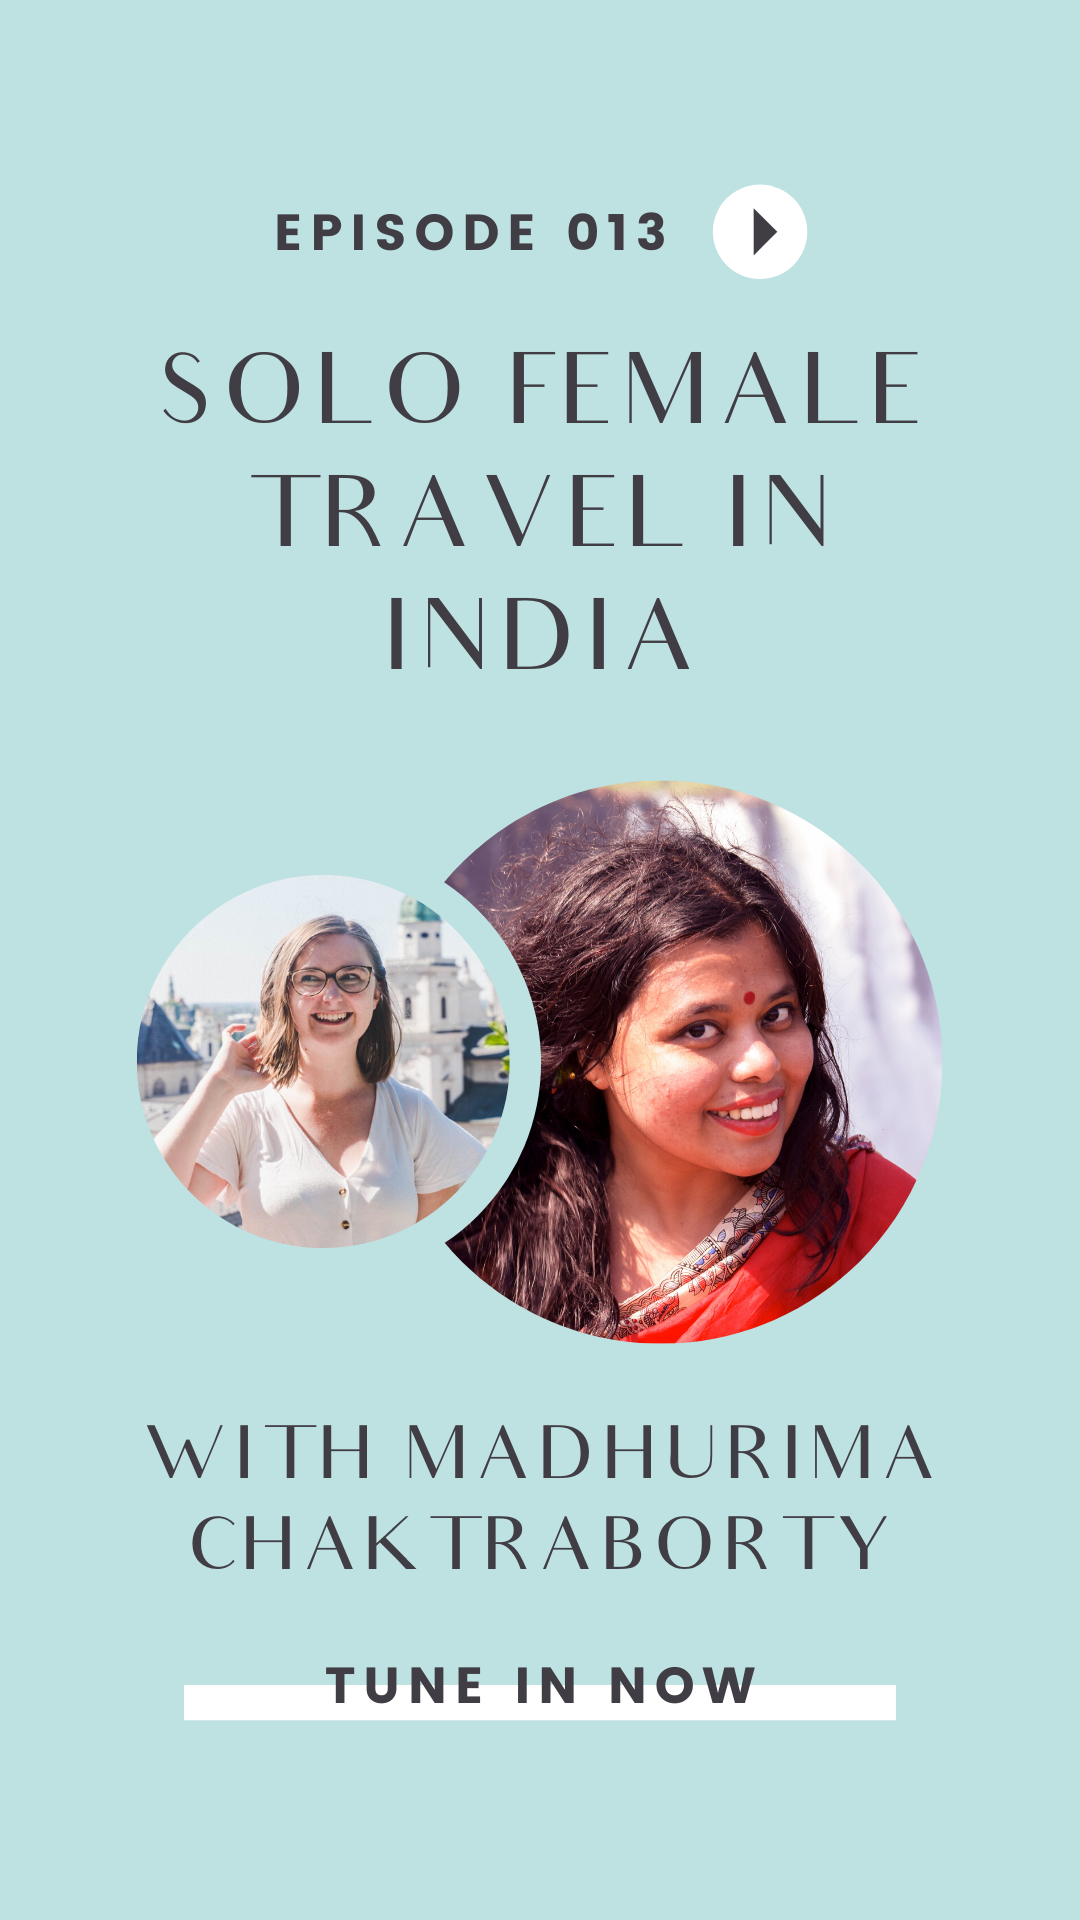 Planning on traveling to India? You NEED to listen to this episode of the Girls Go Abroad podcast, all about solo female travel in India with expert Madhurima Chakraborty! Learn about the best solo female travel destinations in India, solo female travel safety tips, and more. #travel #india